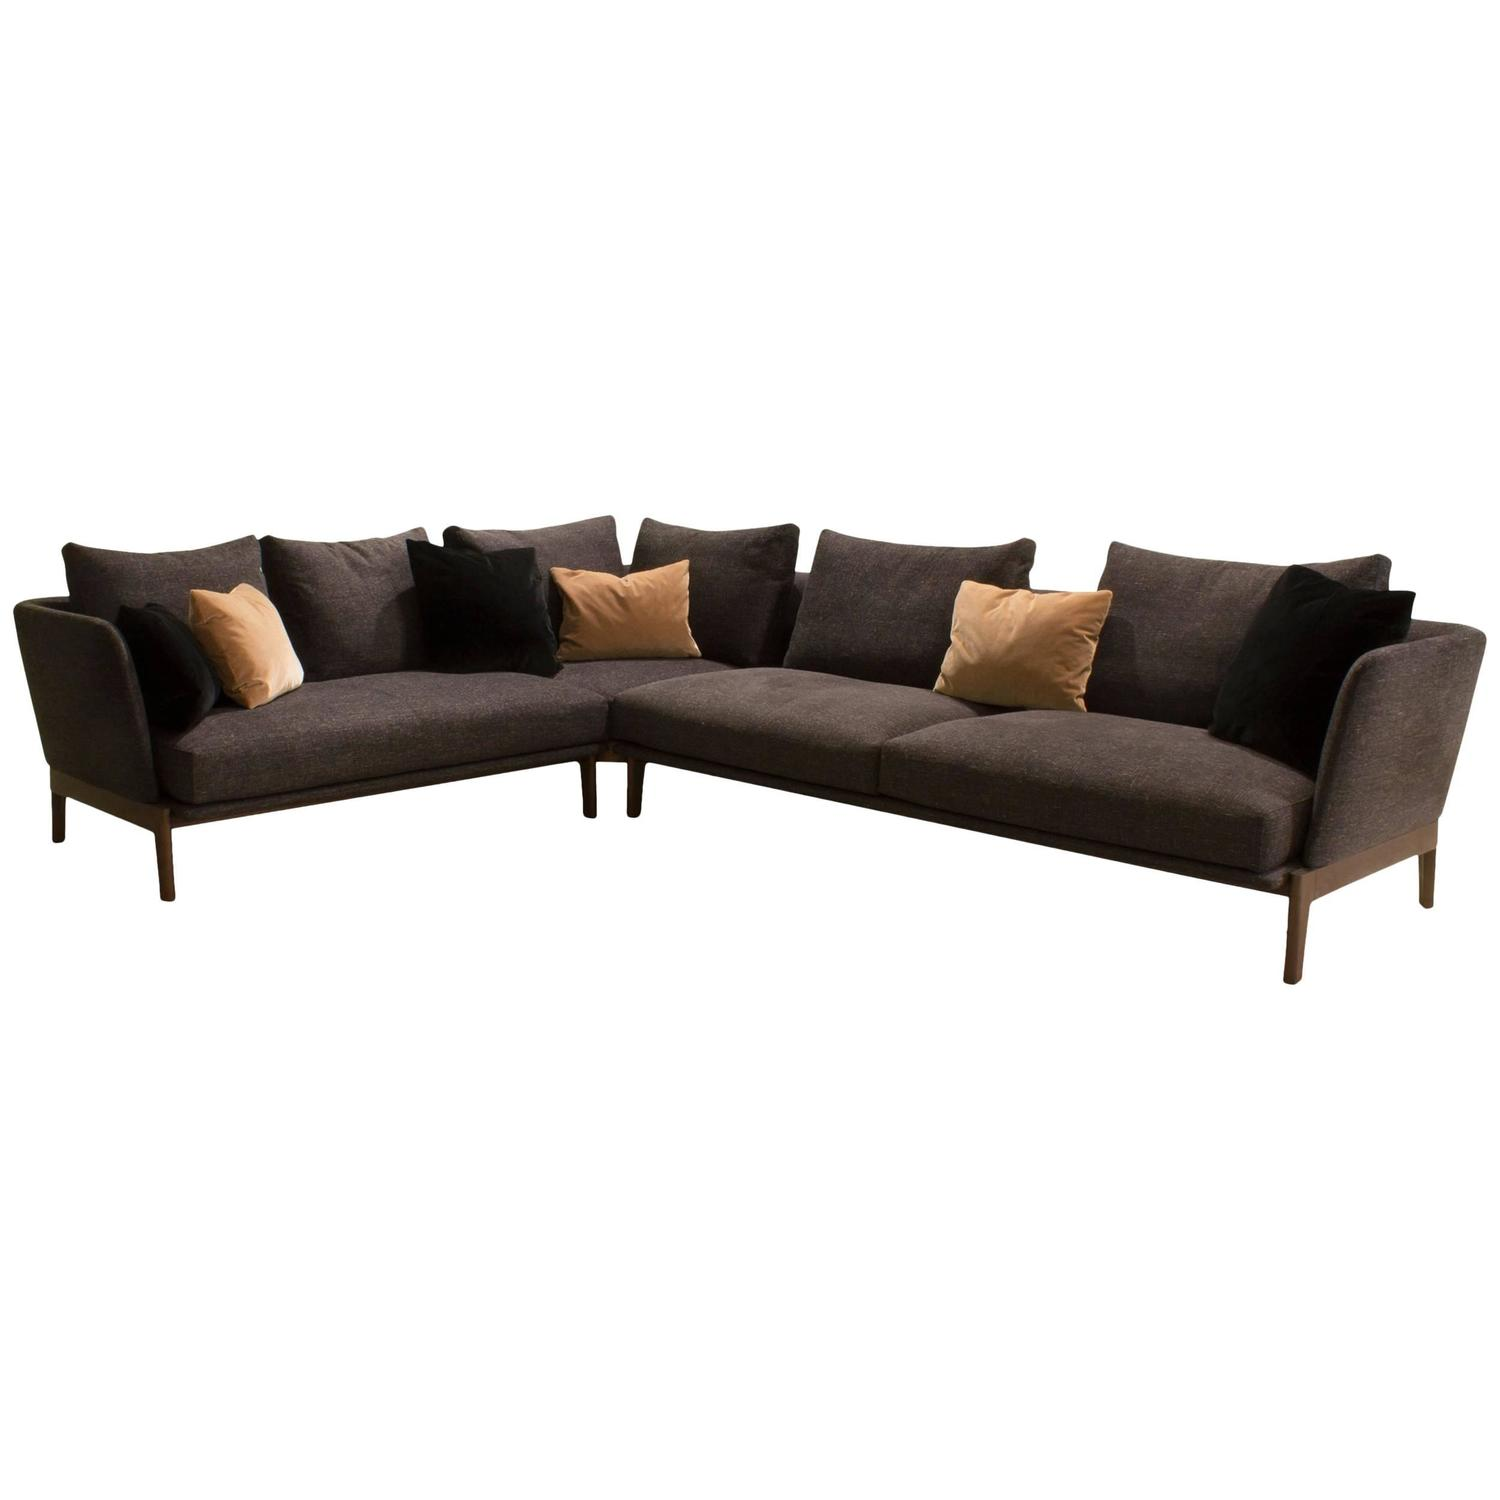 "Minotti ""Moore"" Three Piece Sectional Sofa by Rodolfo Dordoni at"